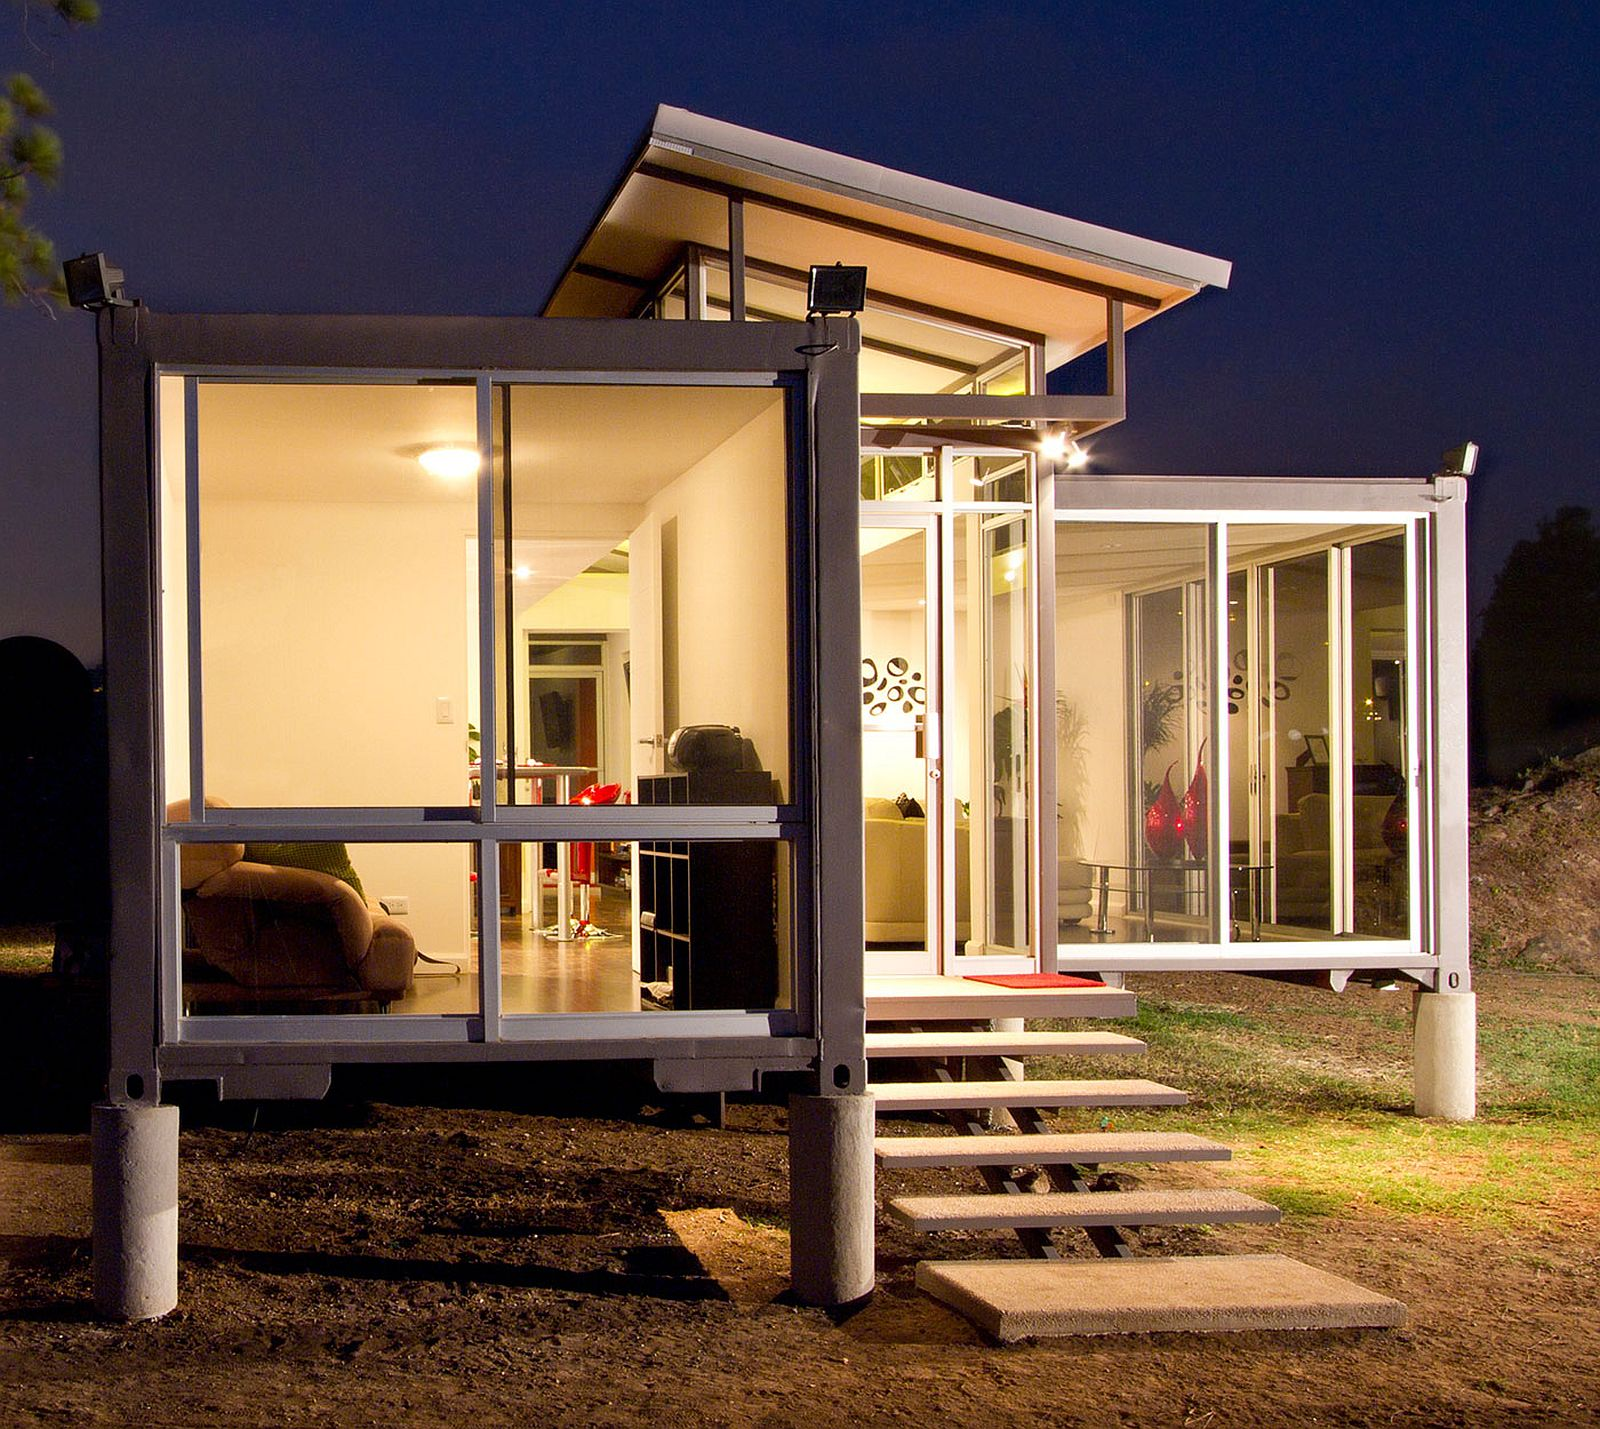 Containers of hope a low cost home by benjamin garcia saxe small house bliss - Building shipping container homes ...